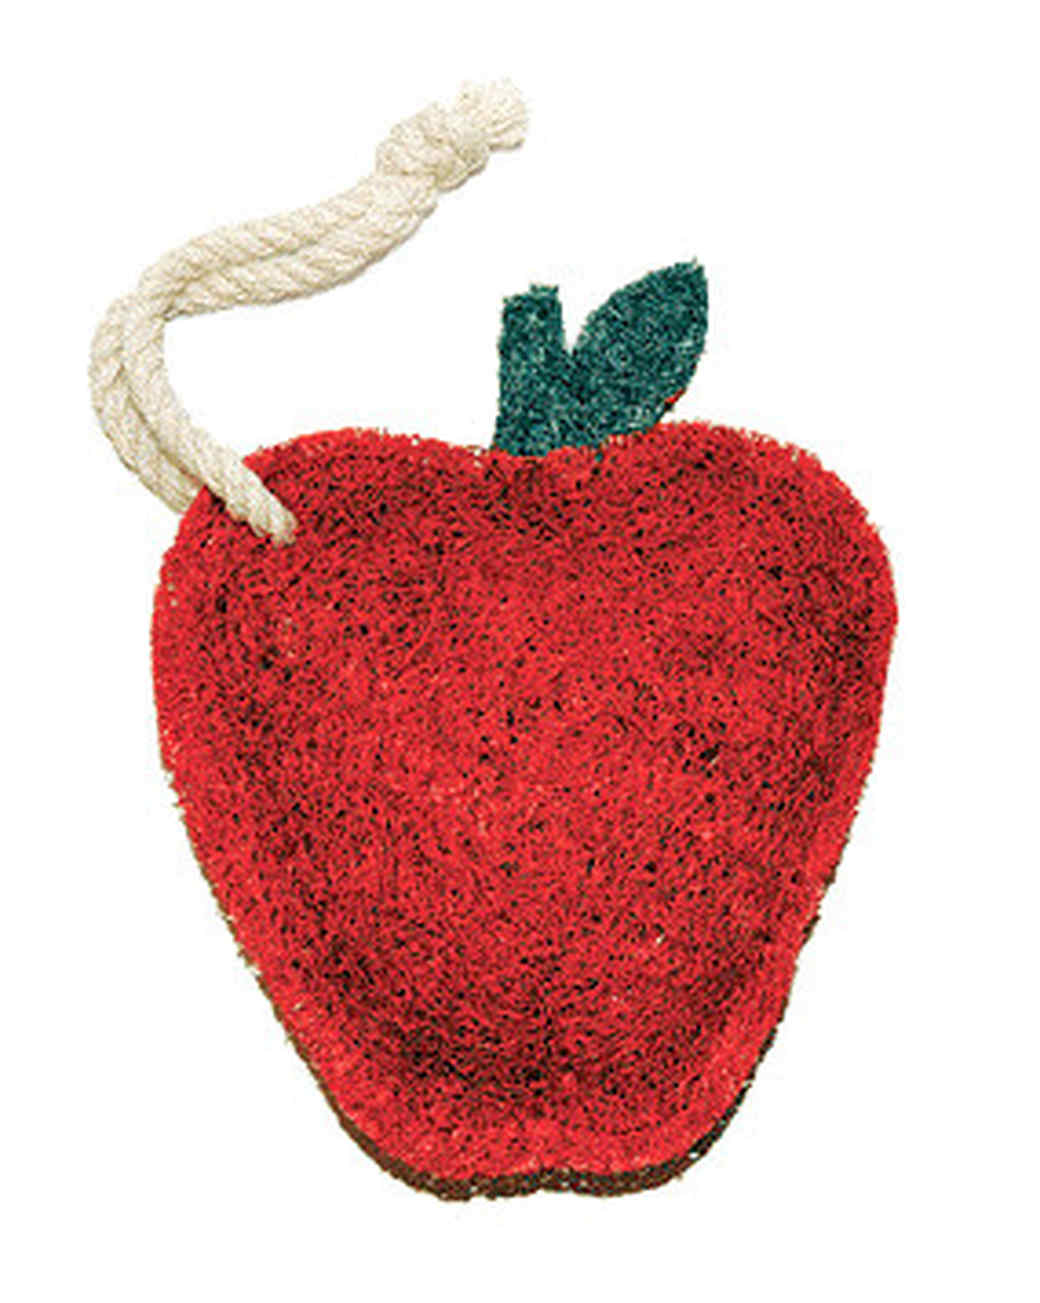 apple-shaped kitchen scrubber